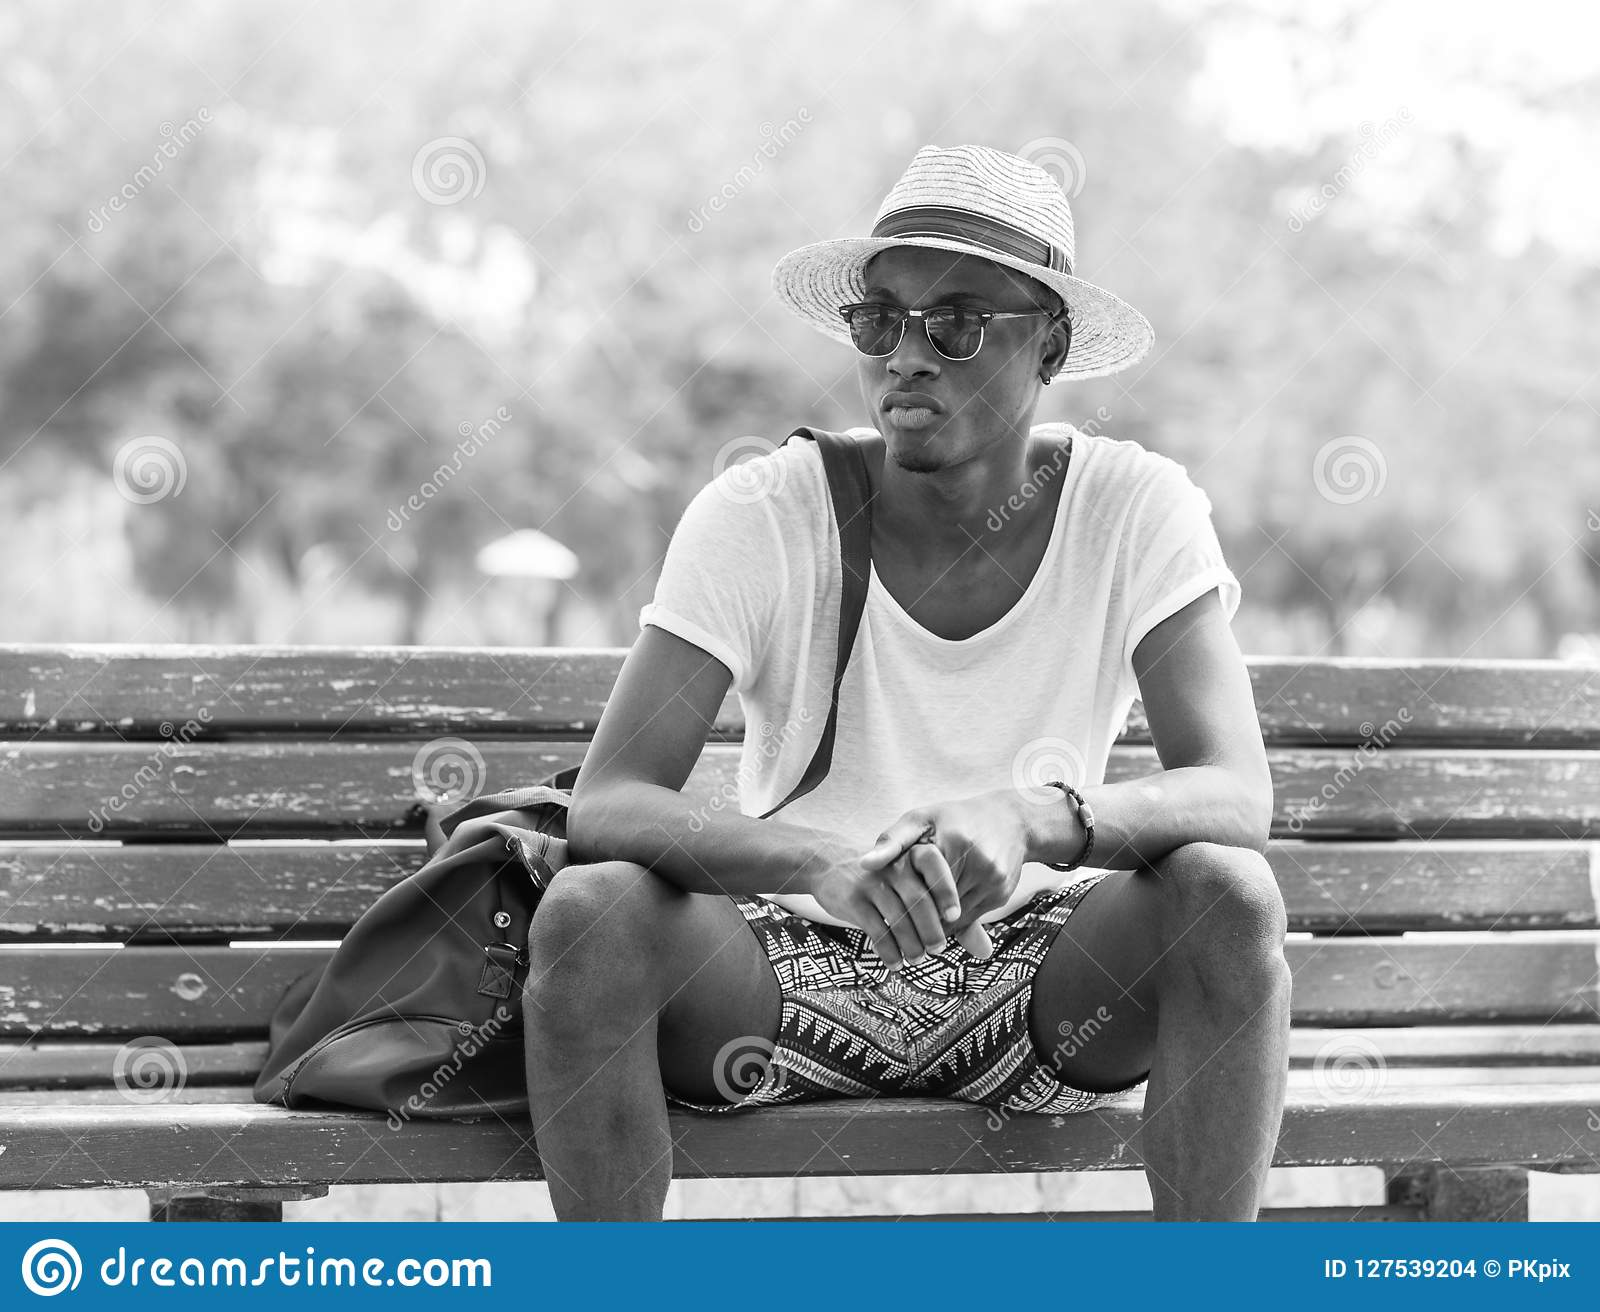 Black and white photo of an african american man watching things from a park bench wearing young millenial cultural clothing